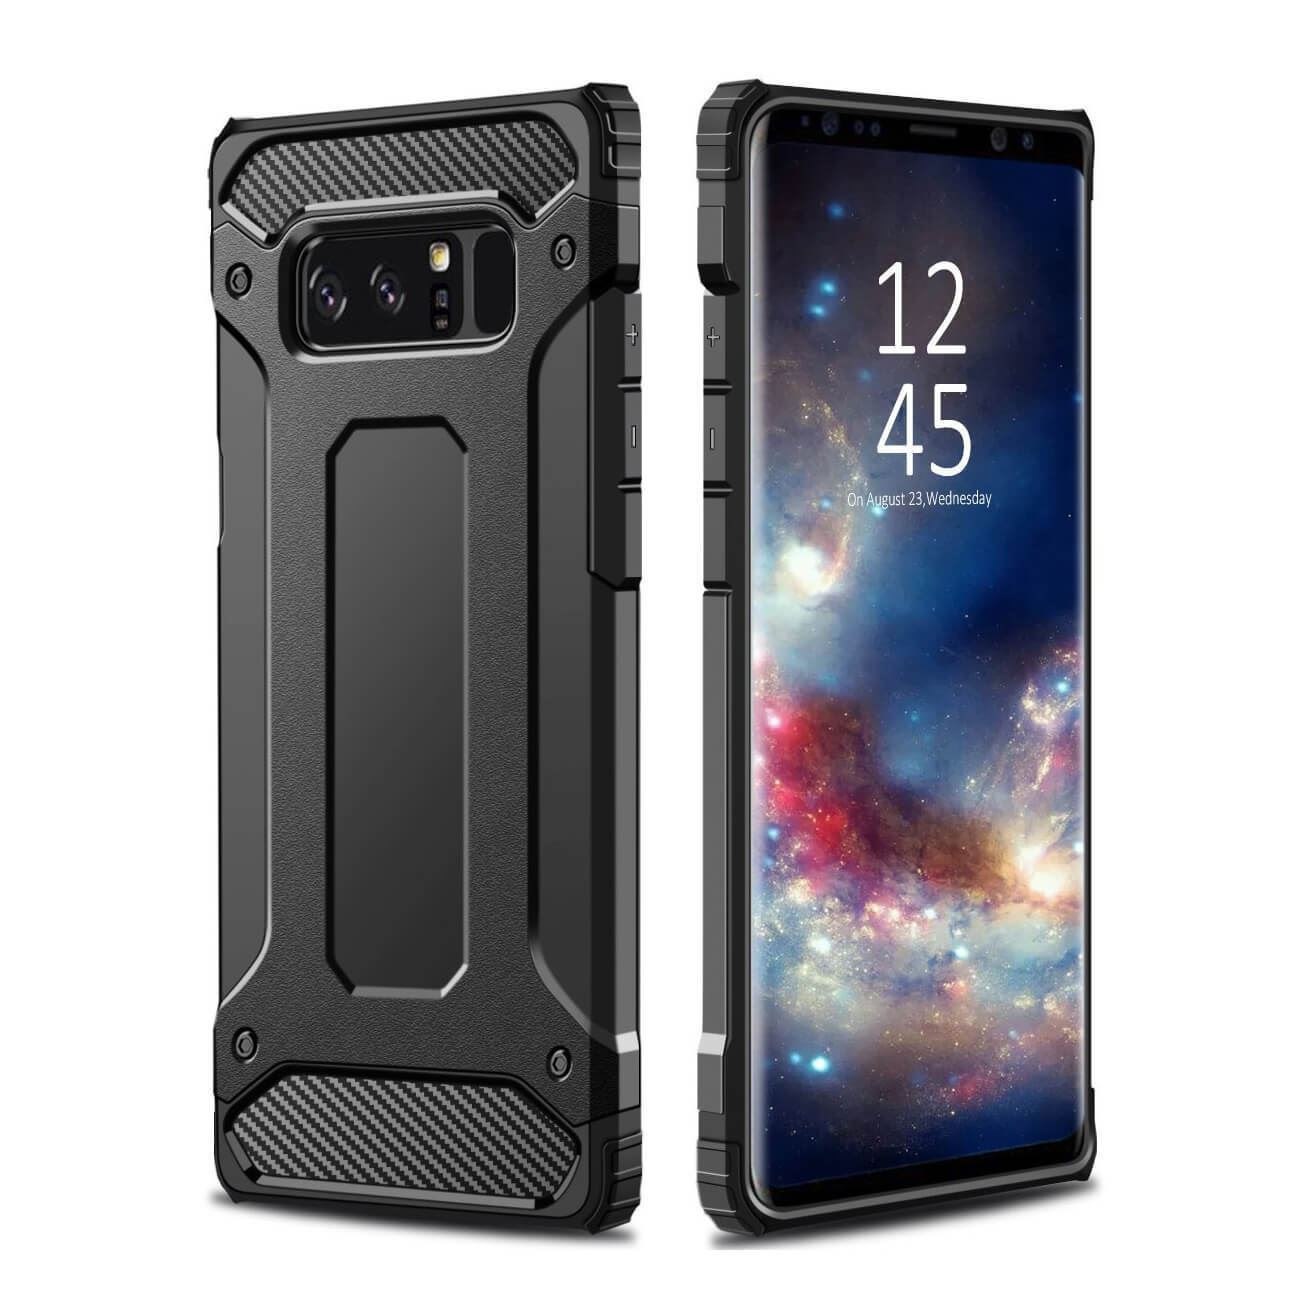 Hybrid-Armor-Case-For-Samsung-Galaxy-S7-S8-S9-Shockproof-Rugged-Bumper-Cover thumbnail 20